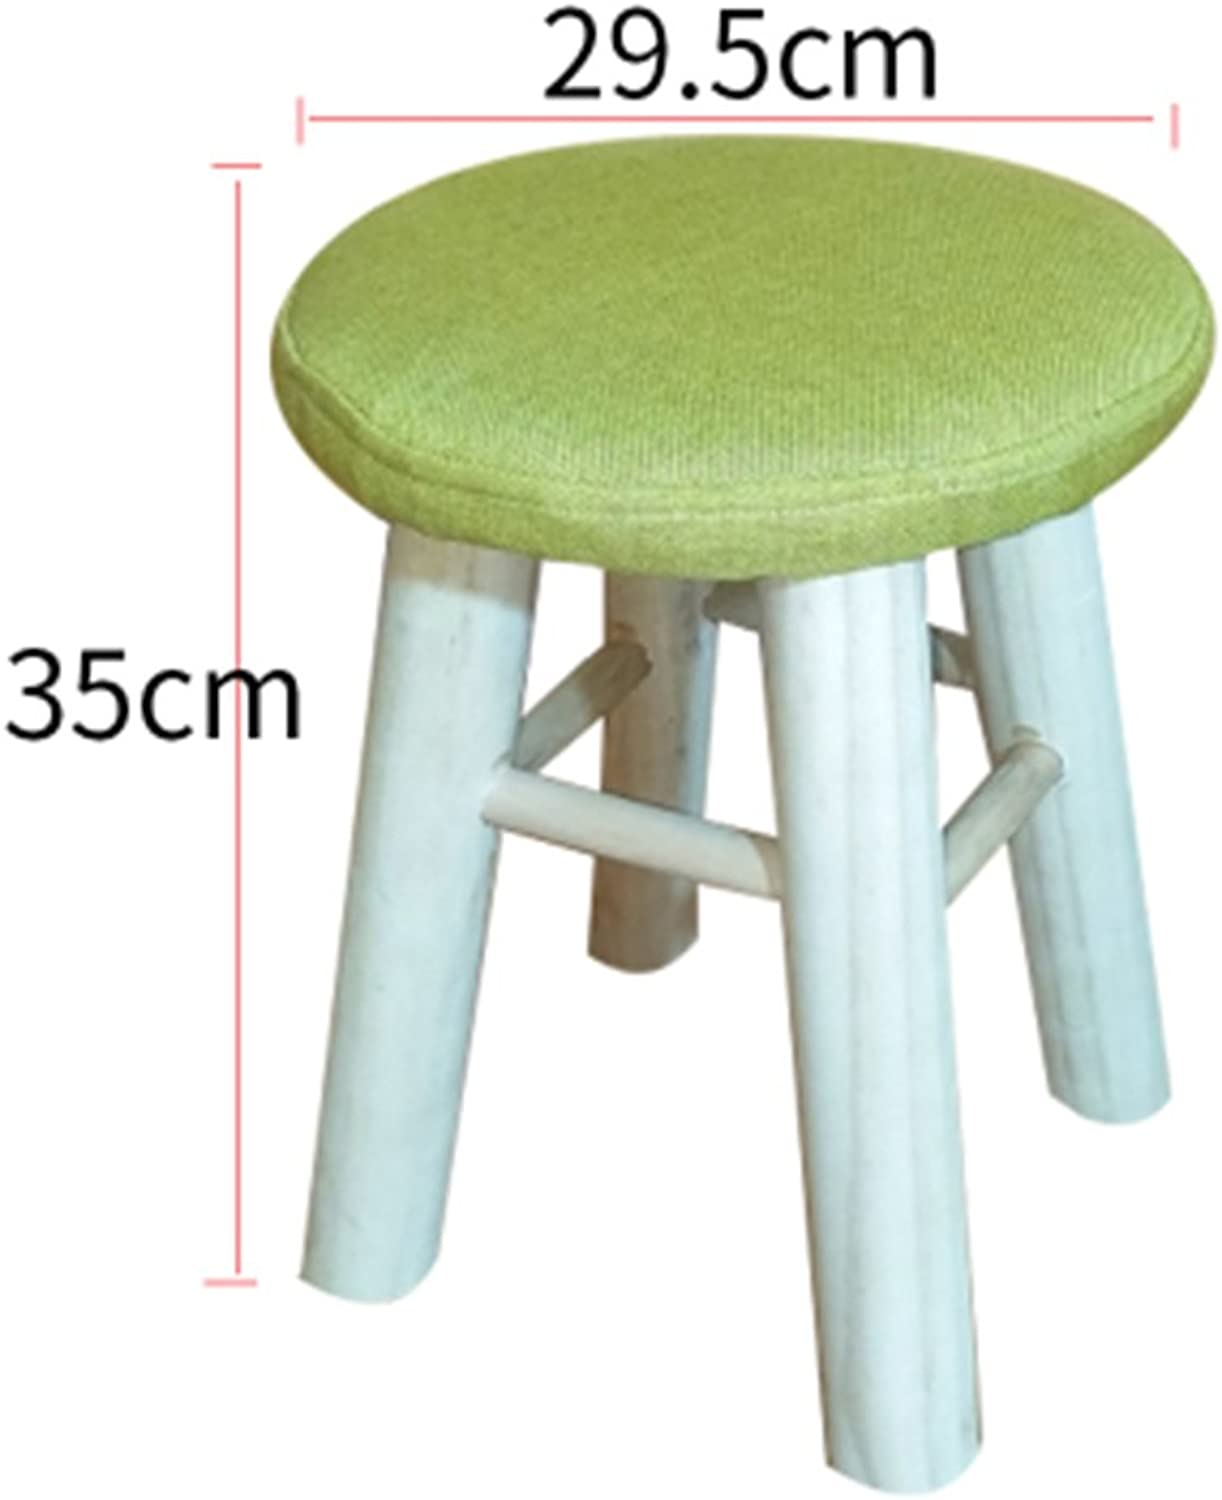 Stools Living Room Solid Wood Table Stool Adult Fabric Fashion Bench Household high Stool 29.5  35cm